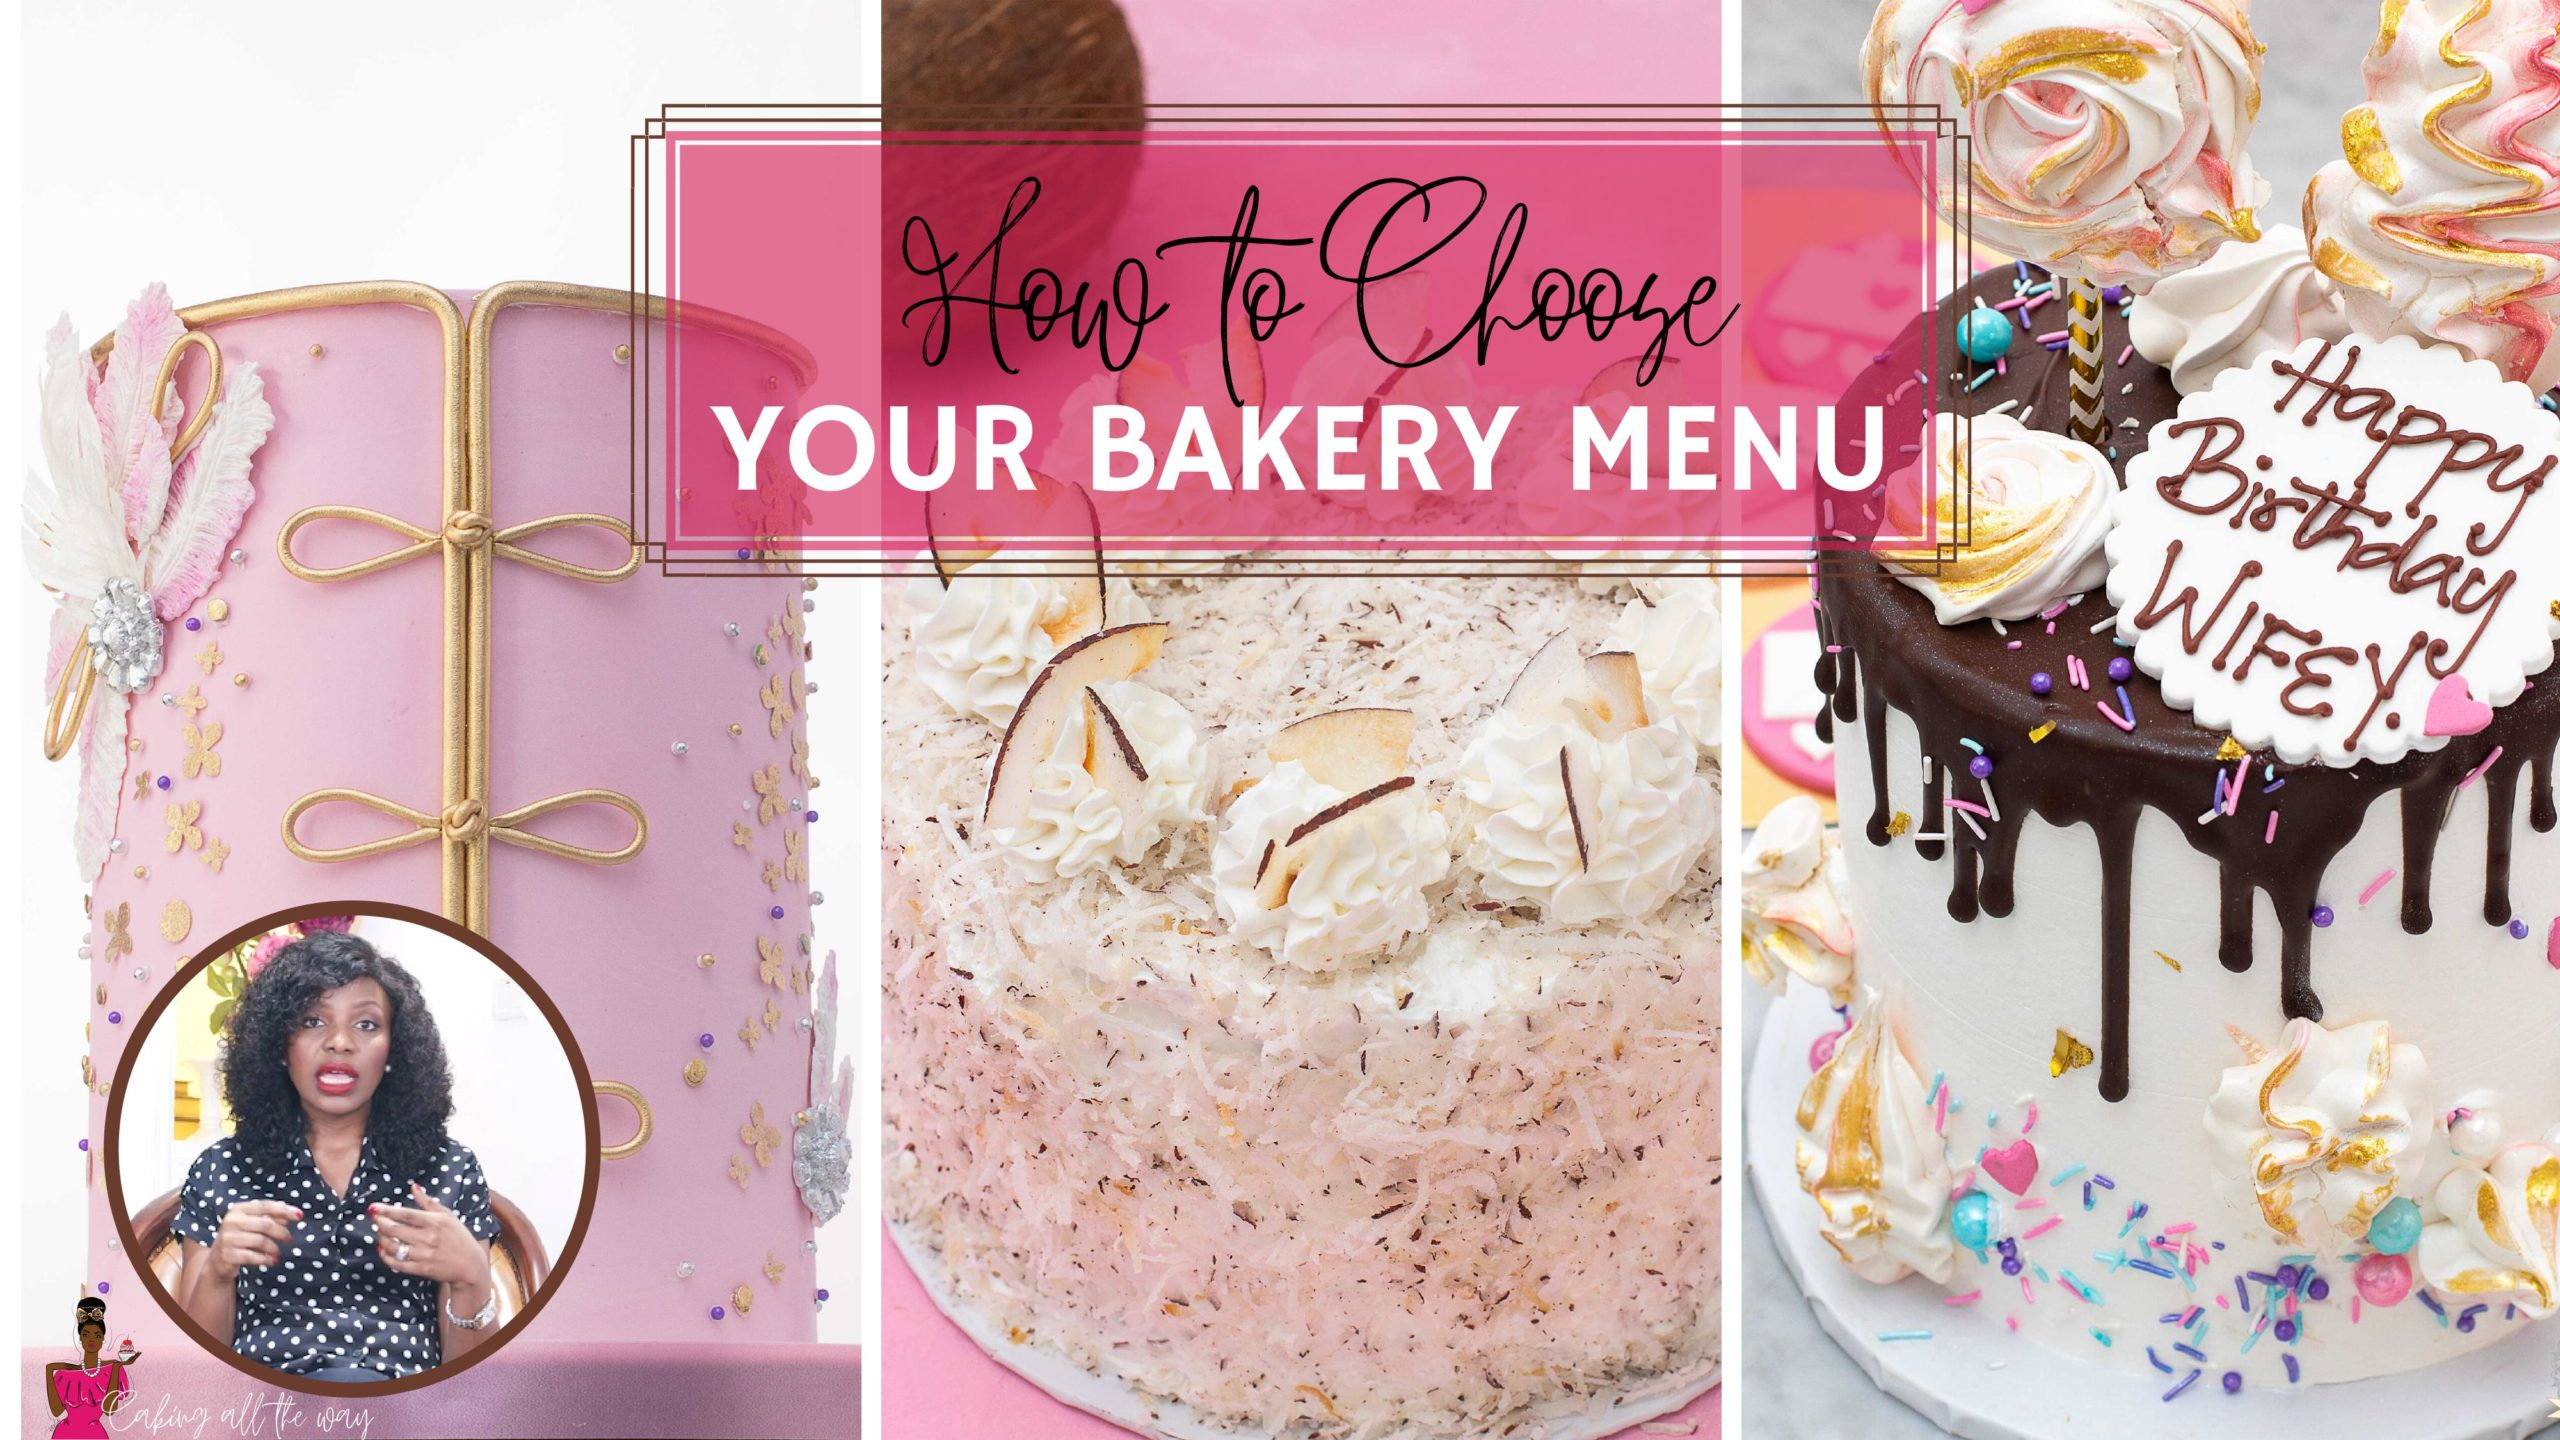 How to Choose your Bakery Menu